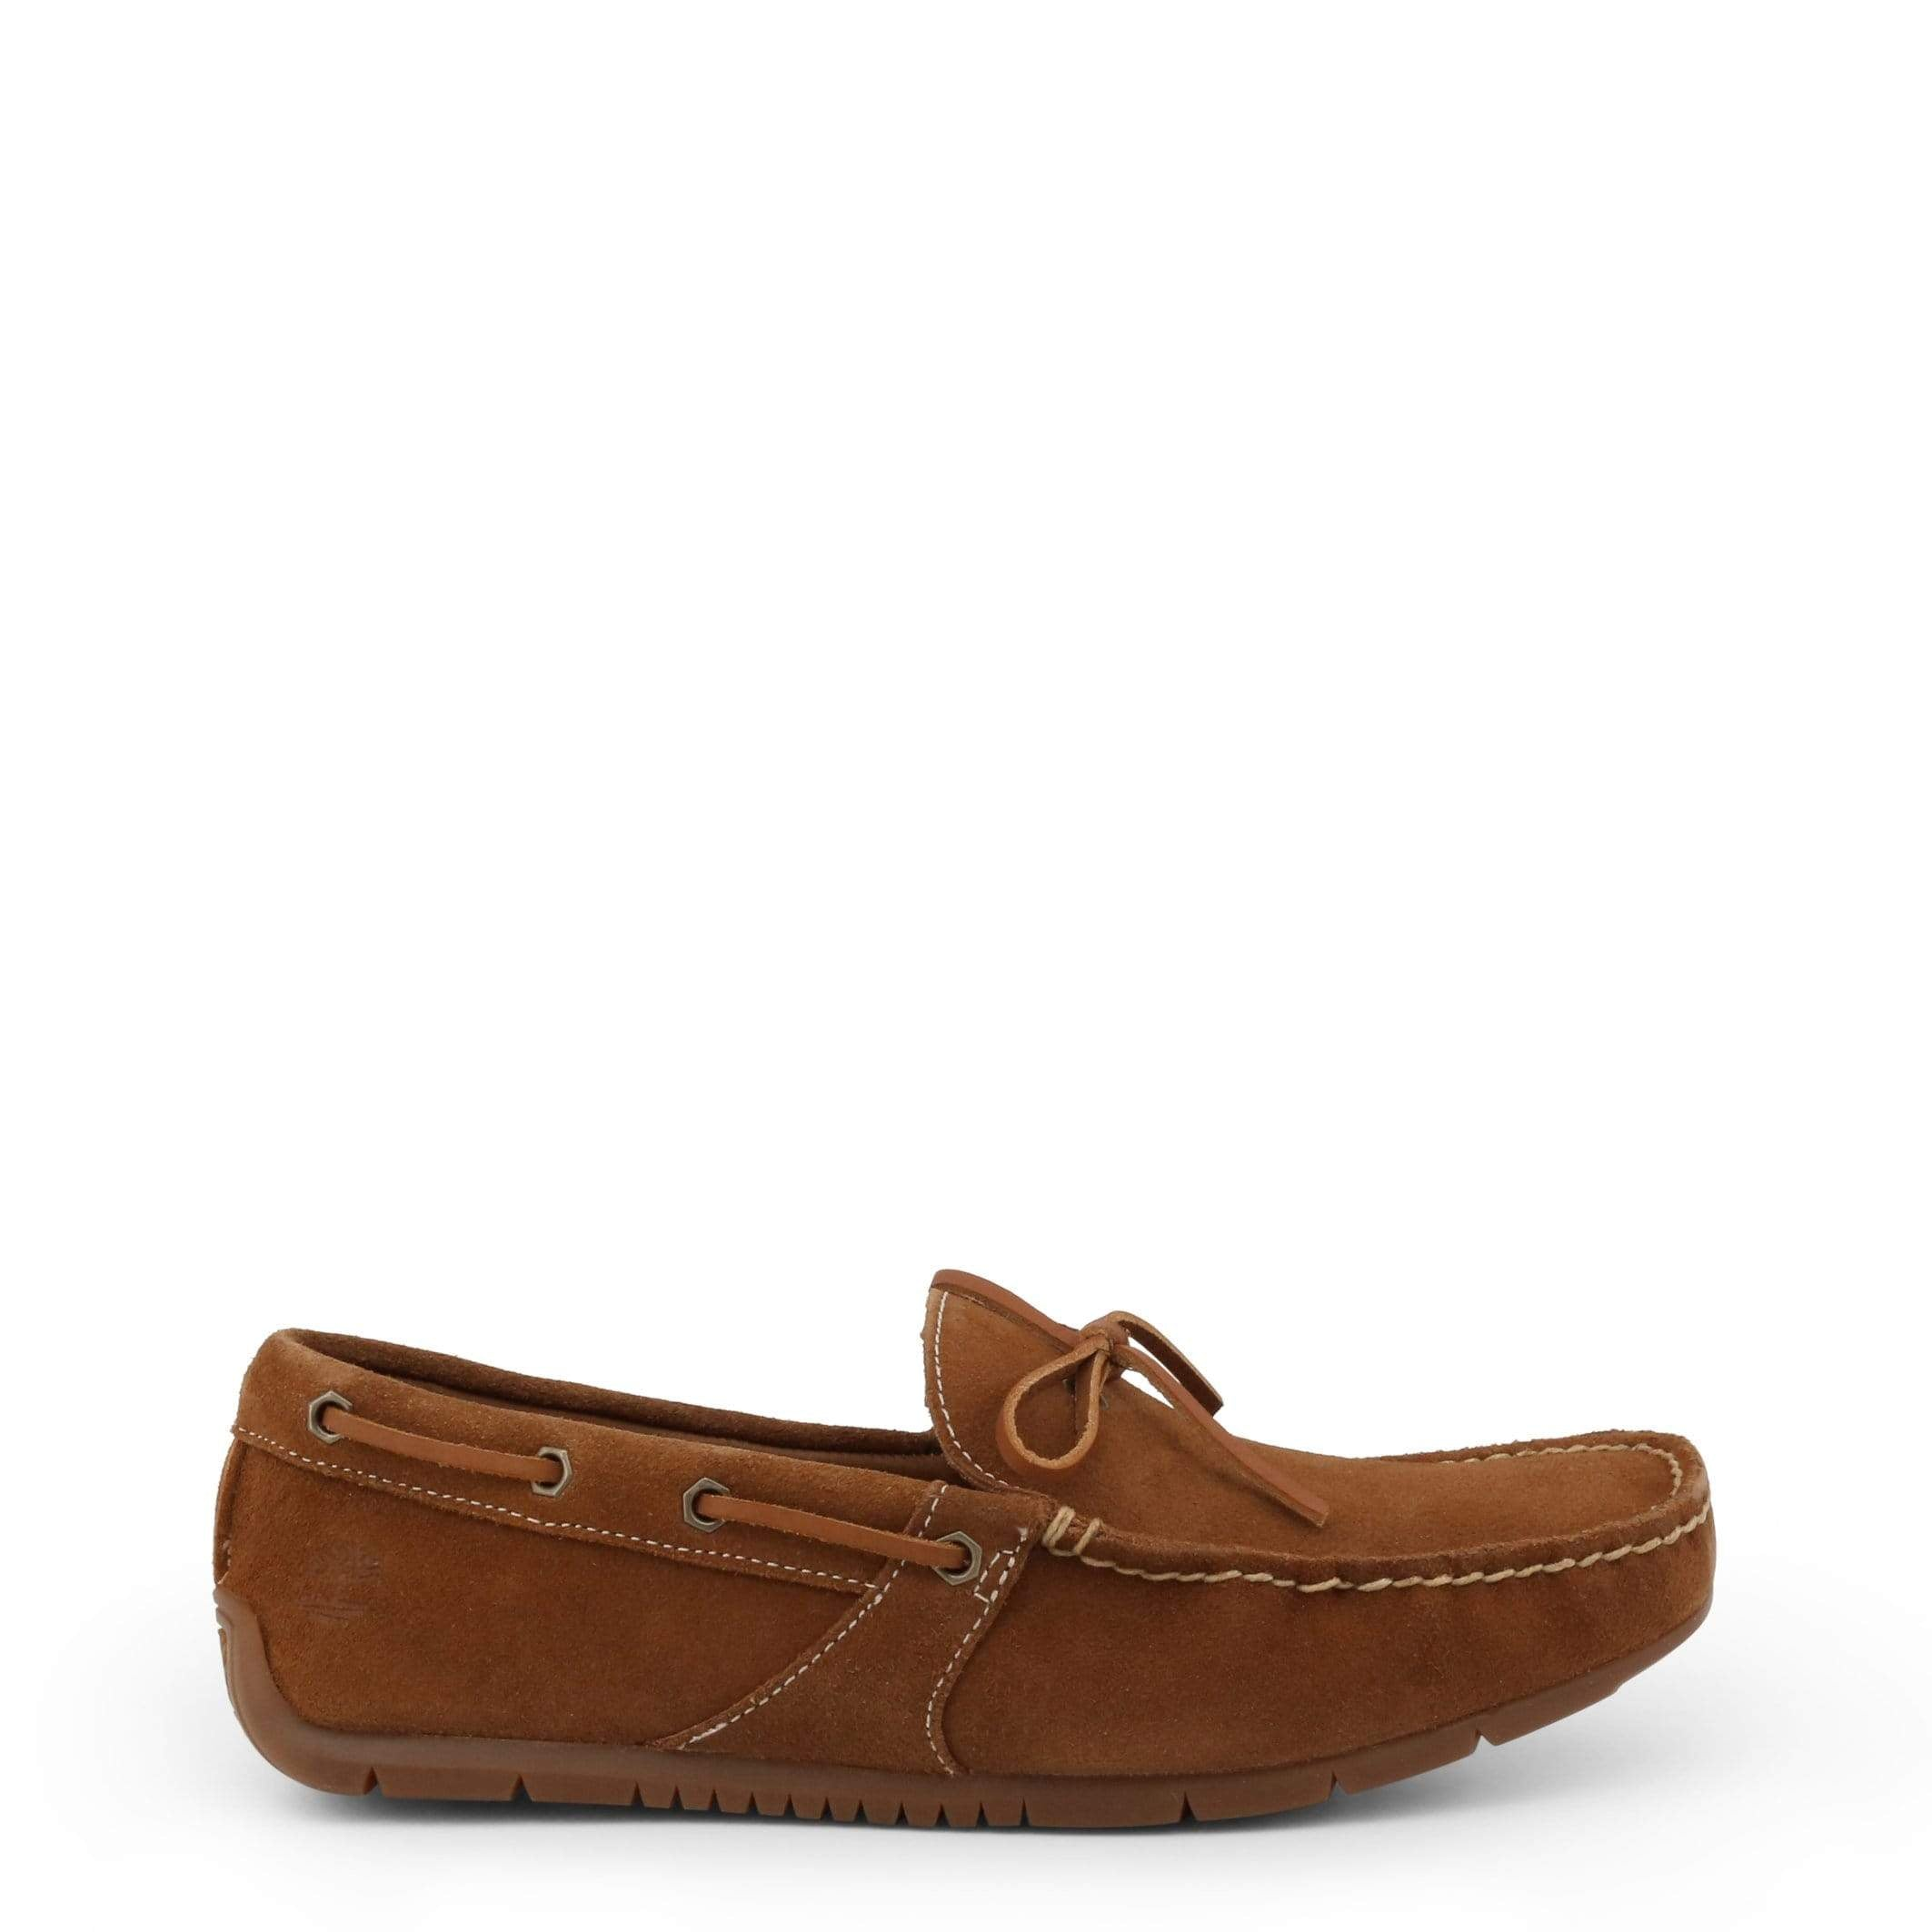 Timberland Shoes Moccasins brown / EU 40 Timberland - LEMANS